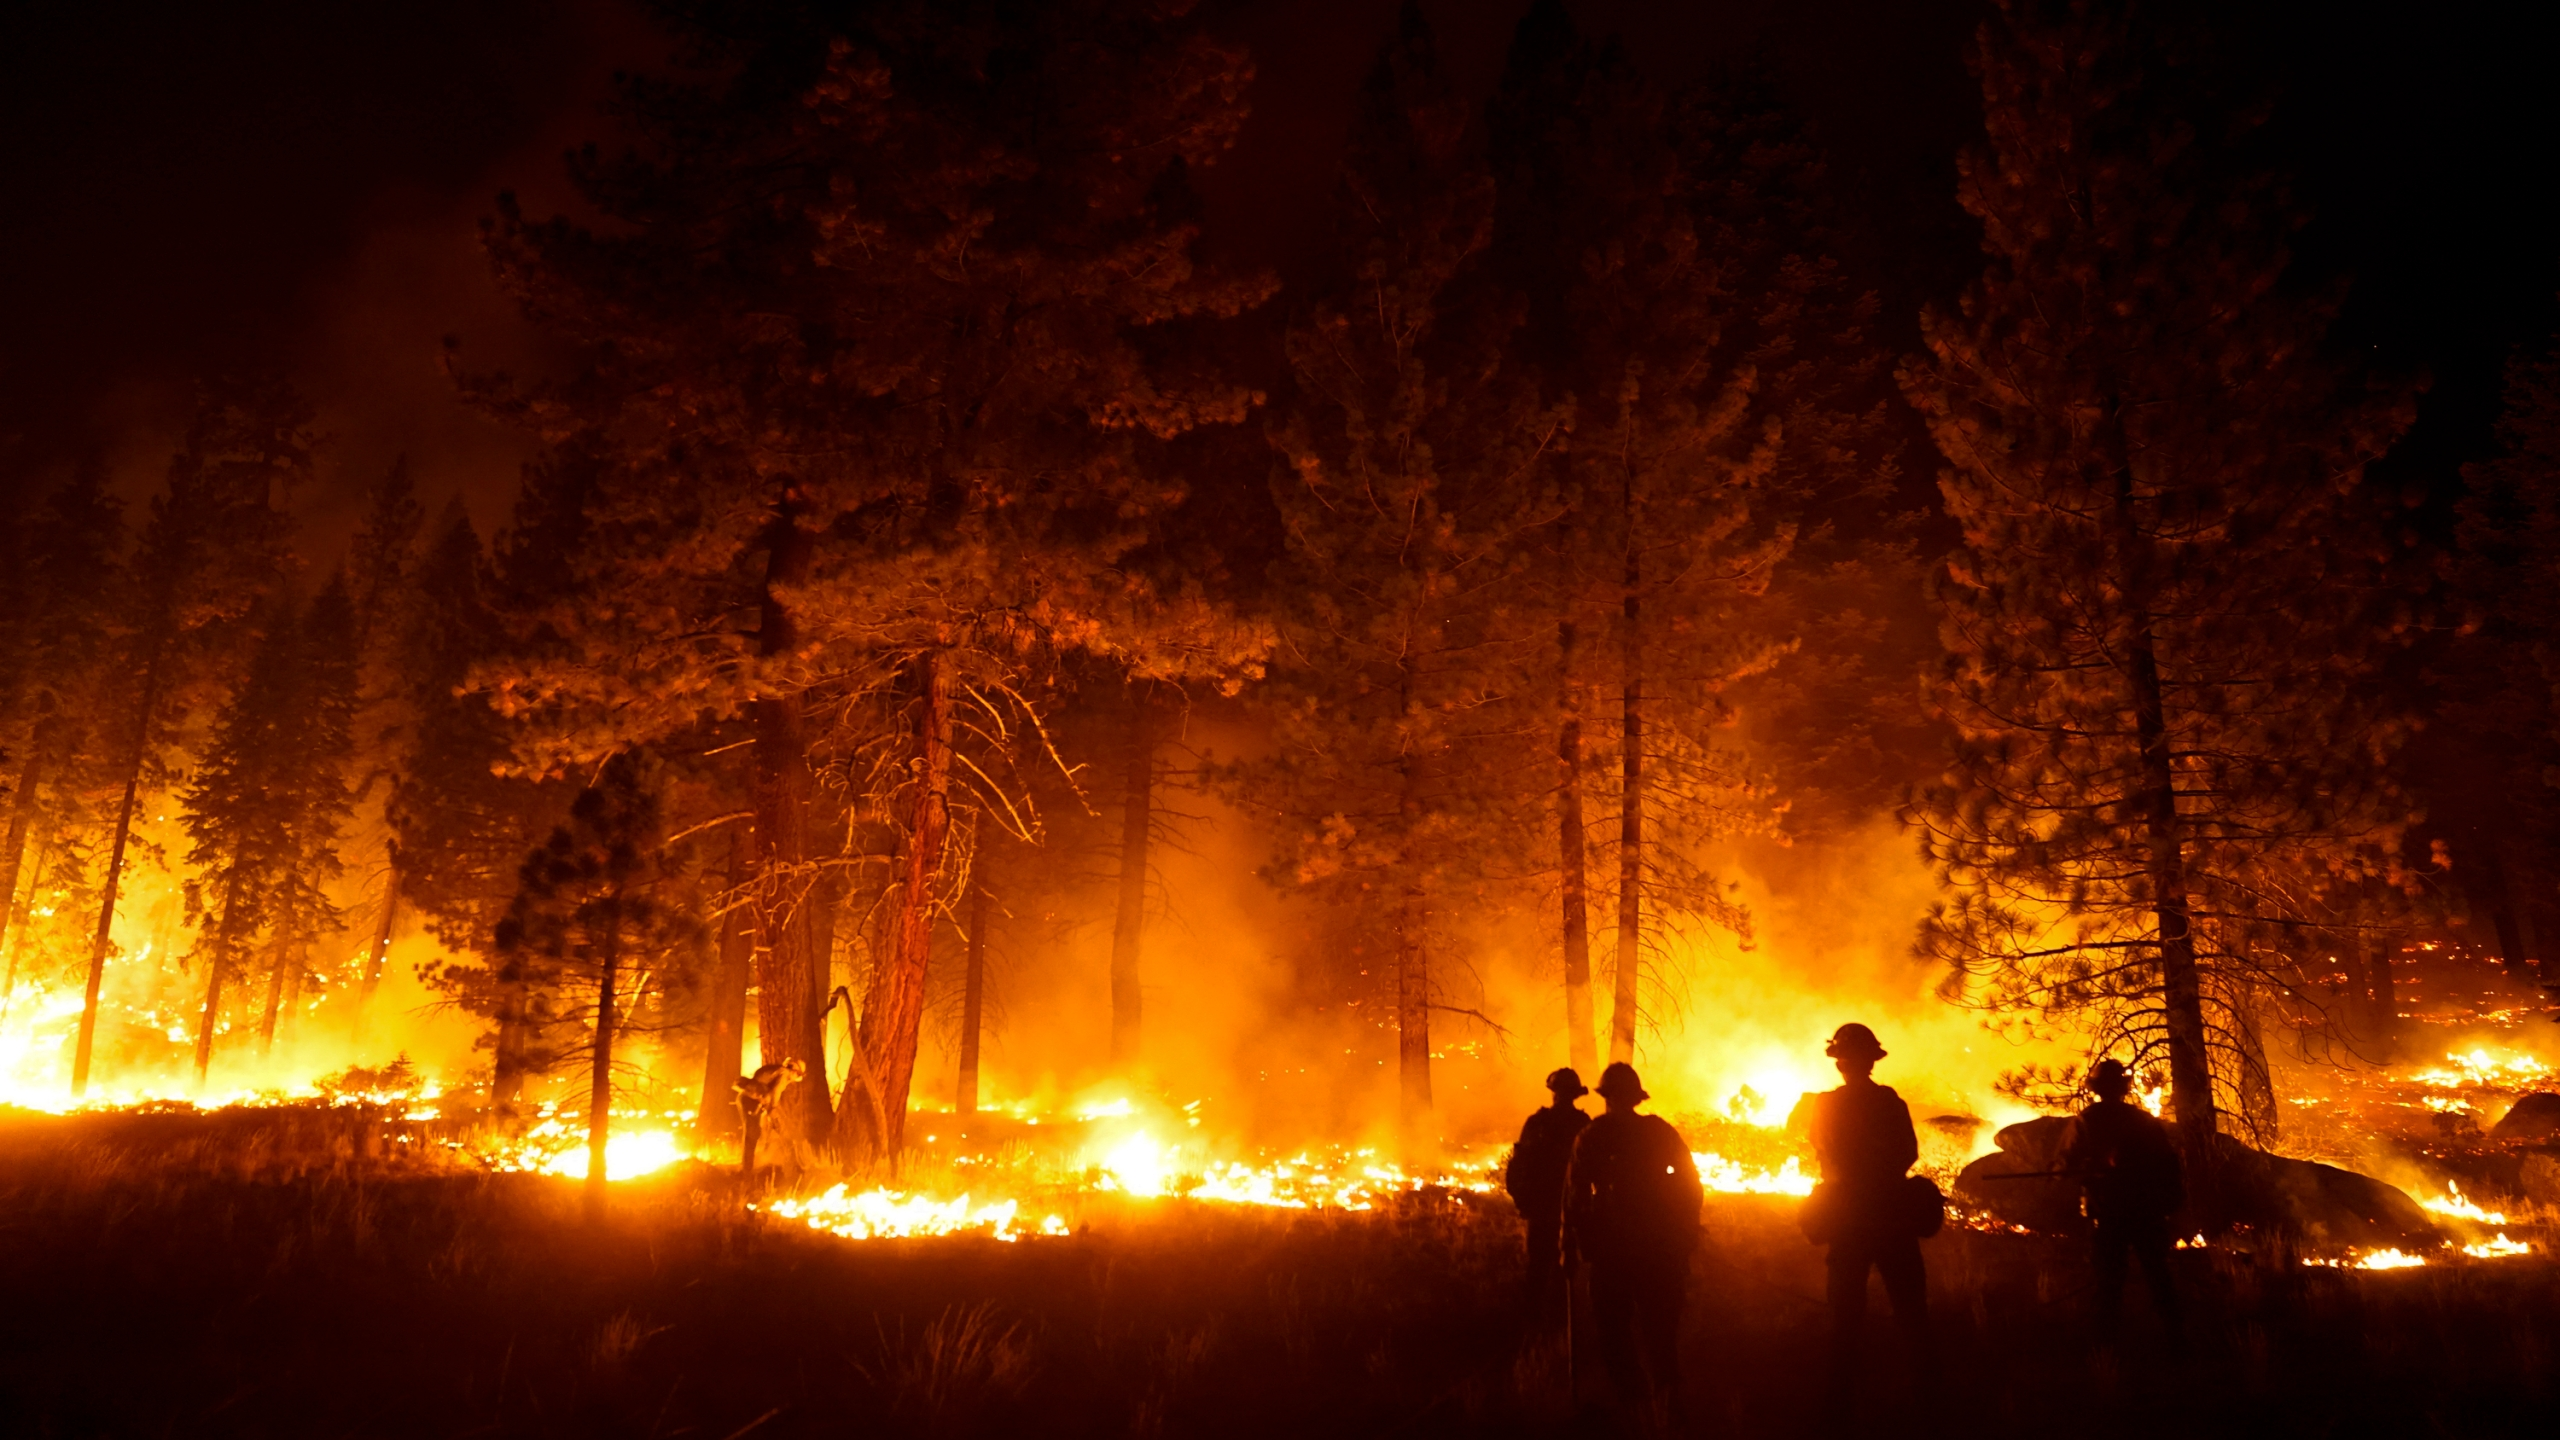 In this Sept. 1, 2021, file photo, a firefighter lights a backfire to stop the Caldor Fire from spreading near South Lake Tahoe, Calif. An unidentified firefighter has died of an illness while assigned to one of California's largest wildfires, authorities said Sunday, Sept. 5, 2021, marking the first death in a season that has seen blazes destroy thousands of buildings and force entire towns to flee. Edwin Zuniga with the California Department of Forestry and Fire Protection said he couldn't provide other details on the death. (AP Photo/Jae C. Hong, File)